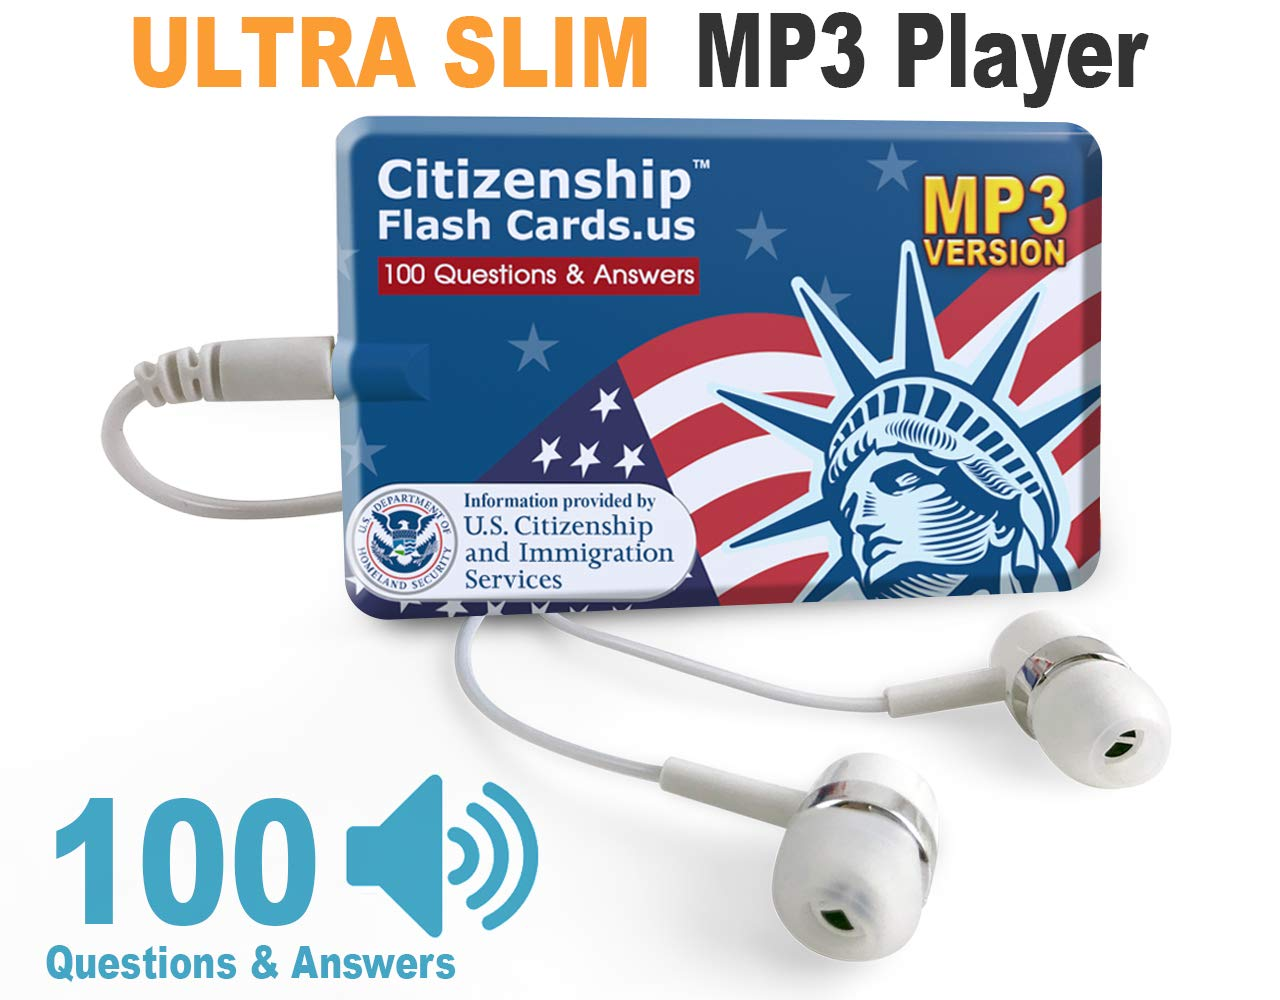 US Citizenship Test Civics Flash Cards for The Naturalization Exam 2019 | Includes MP3 Player with All Official 100 USCIS Questions and Answers | USCIS N-400. Get Ready for The Immigration Test.